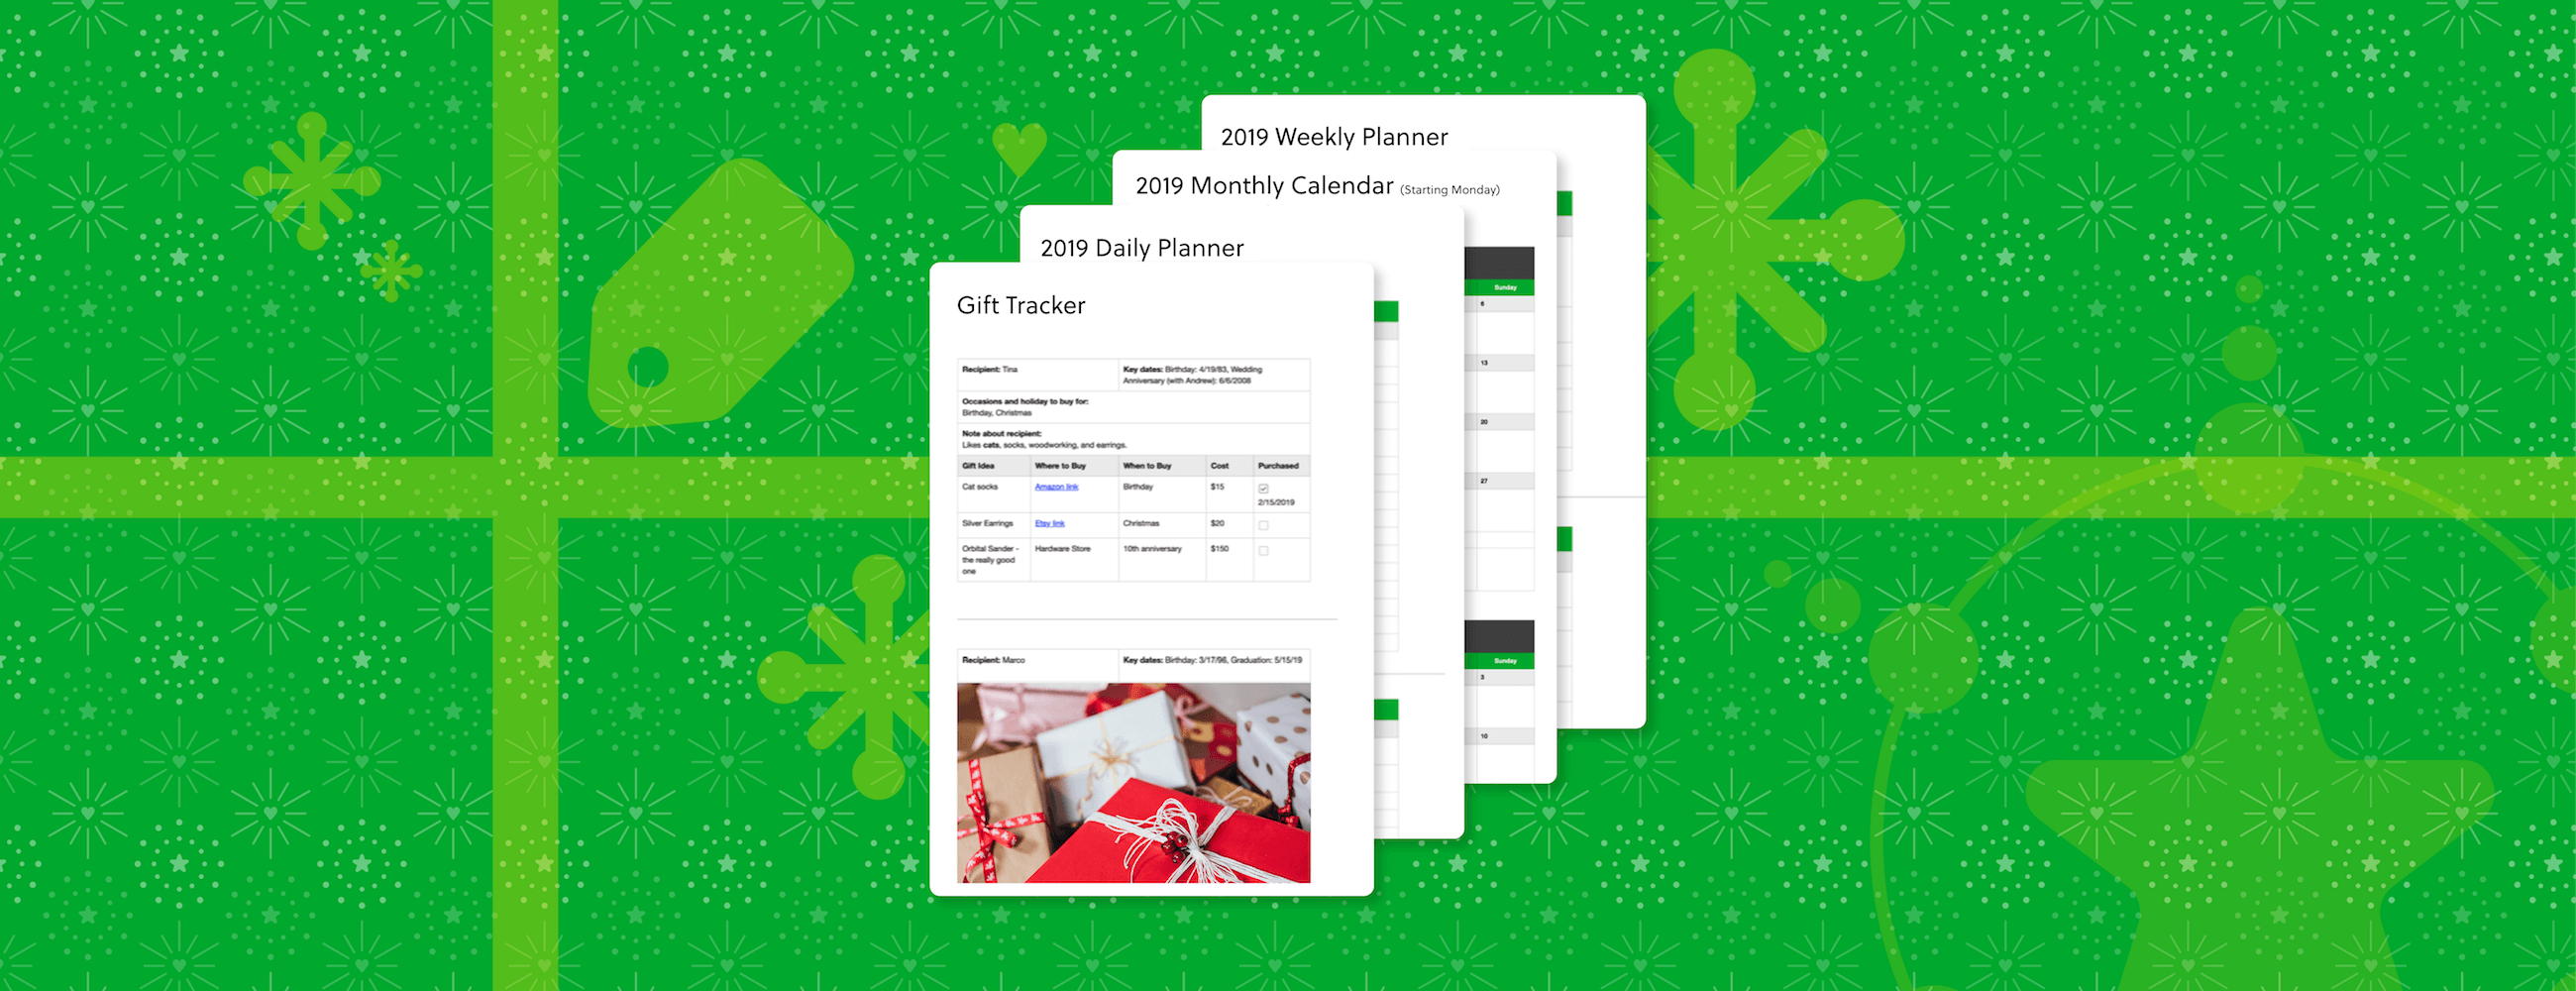 17 New Templates To Plan Your Holidays Evernote Blog